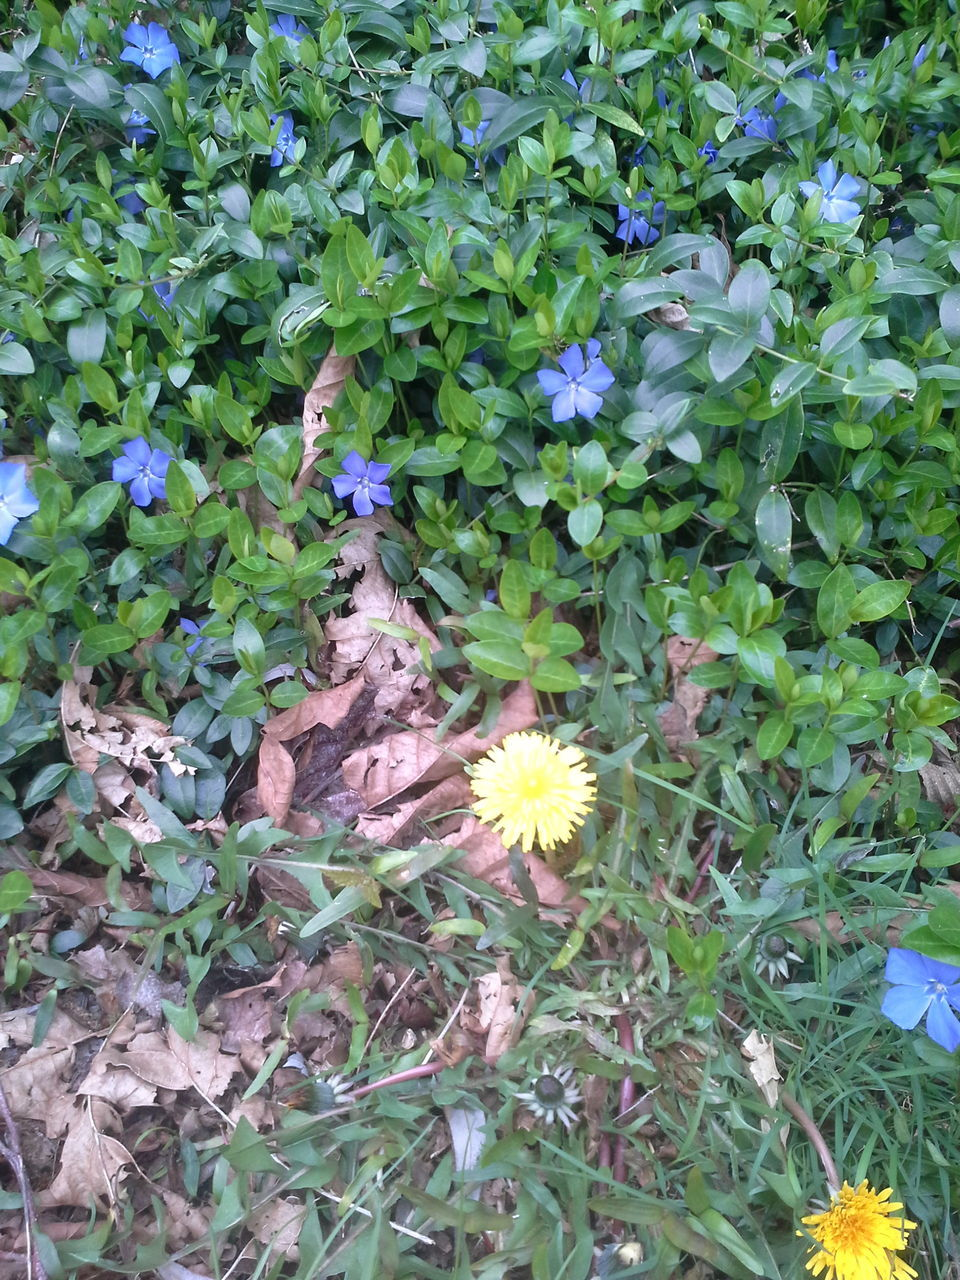 flower, growth, plant, nature, blooming, petal, fragility, spring, leaf, flower head, freshness, no people, outdoors, beauty in nature, day